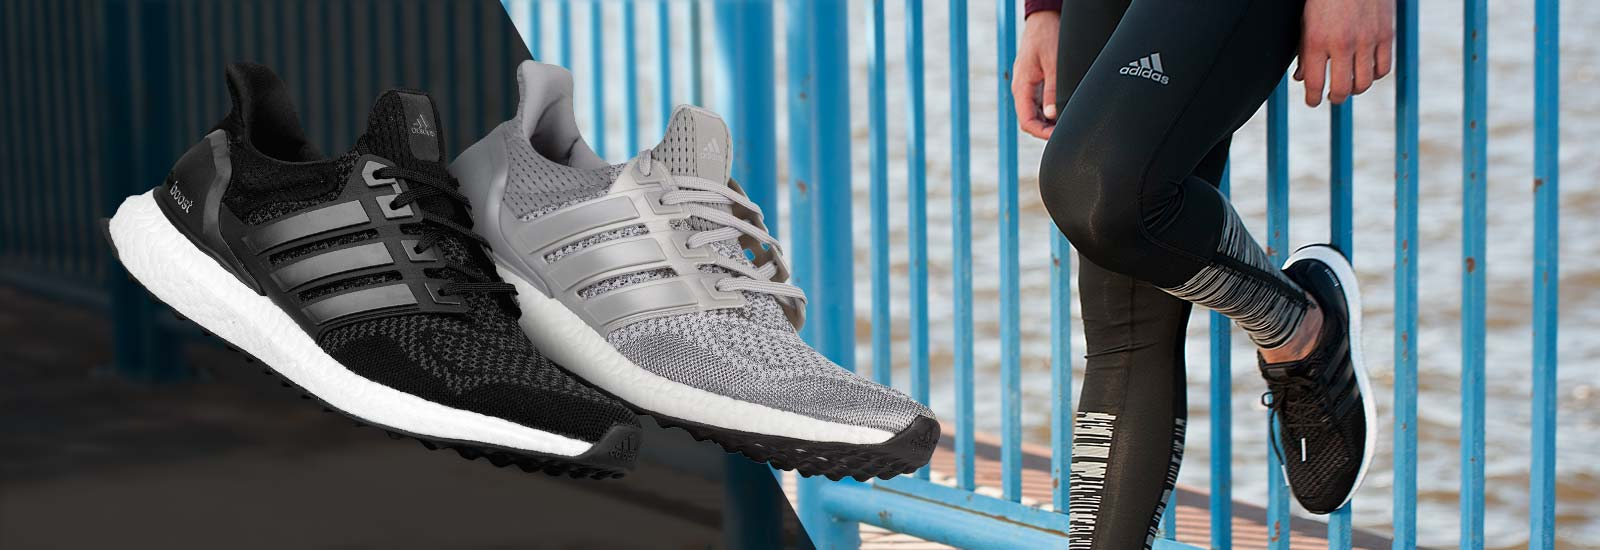 EB-HP-Spotlight-Full-120315-ultra boost-1600x550 2